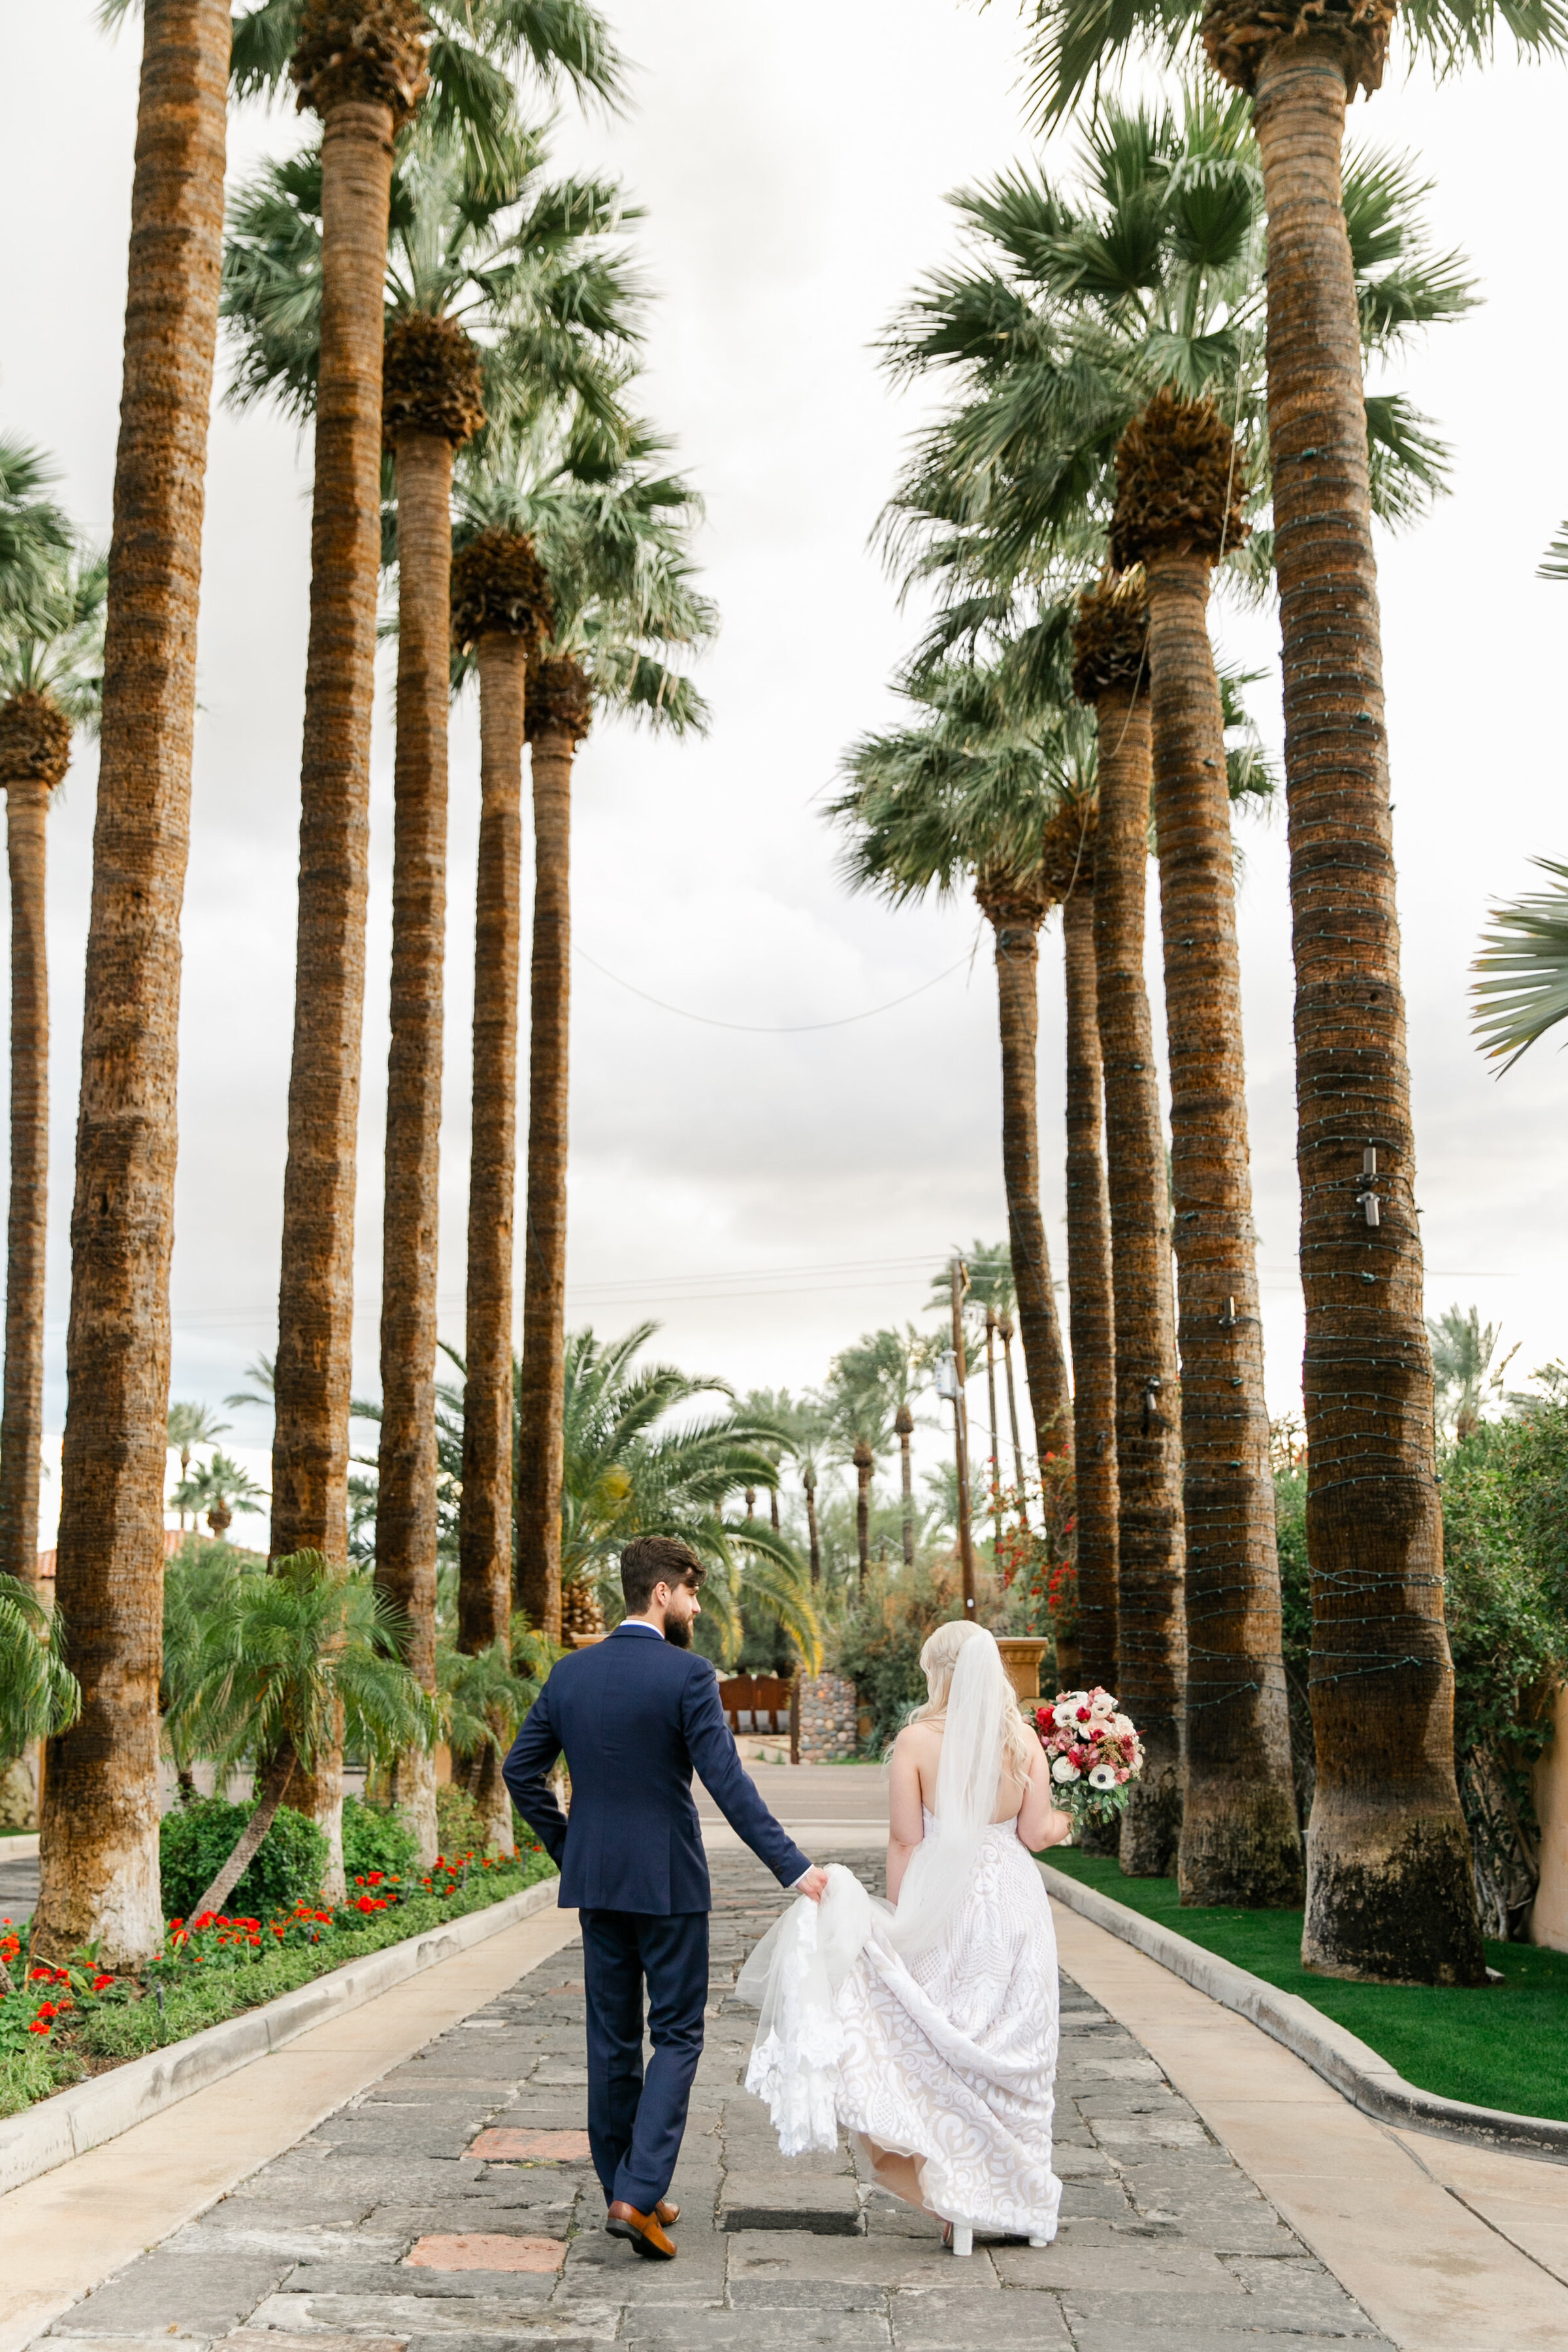 Karlie Colleen Photography - The Royal Palms Wedding - Some Like It Classic - Alex & Sam-572